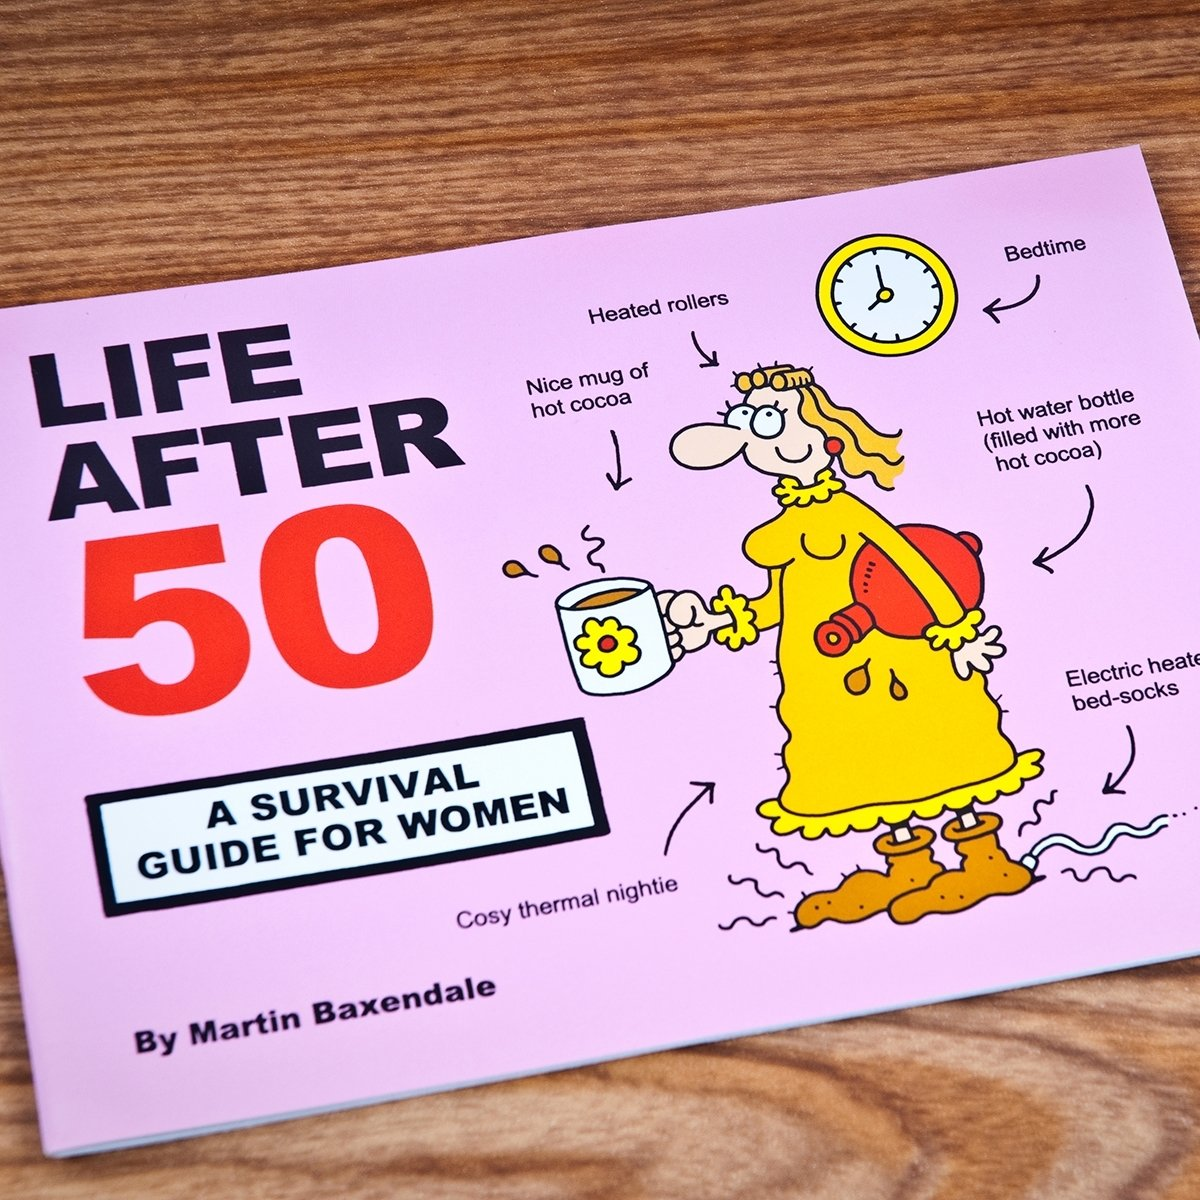 10 Nice Gift Ideas 50Th Birthday Woman martin baxendale life after 50 survival guide for women 2020